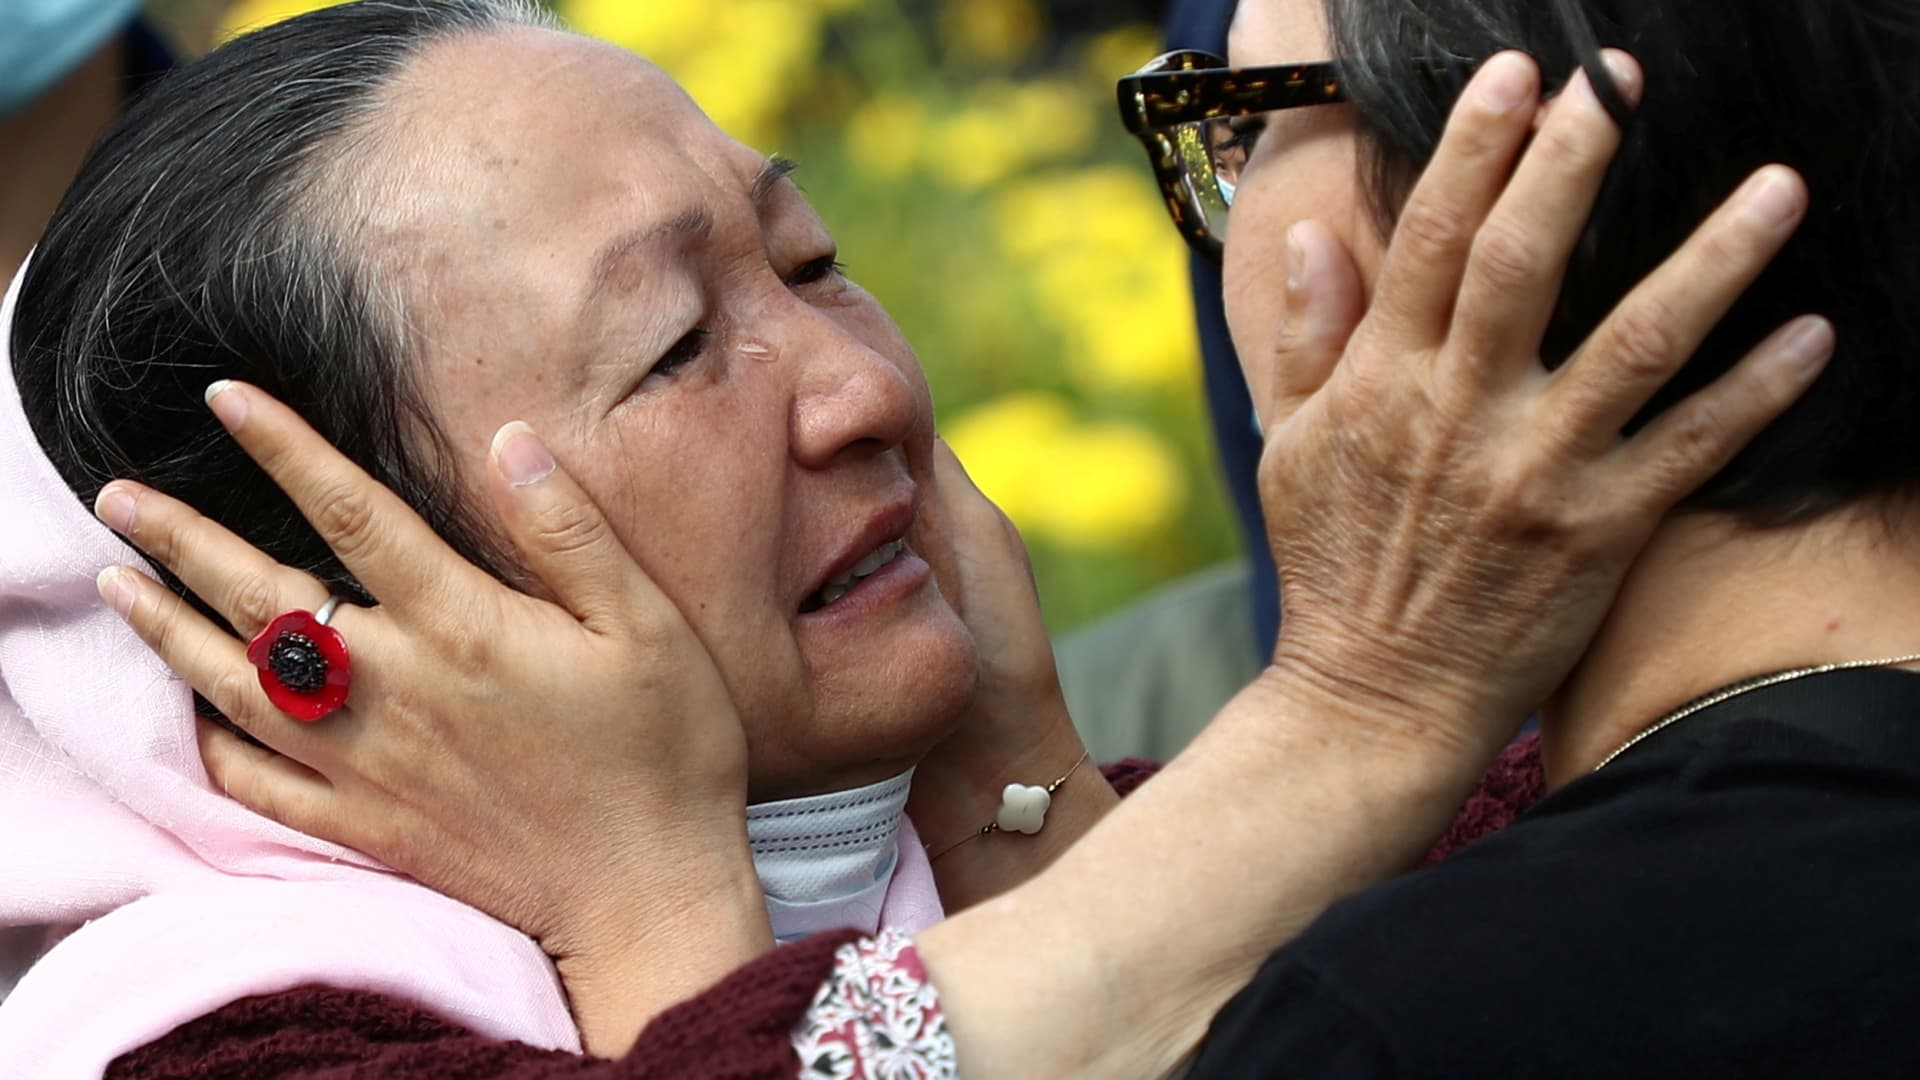 Shakiba Dawod, an Afghan artist who lives in France, kisses her mother, Qadira, at a reception center near Paris on Aug. 27, 2021. They are reuniting for the first time in 12 years, after Dawod's family was evacuated from Afghanistan.